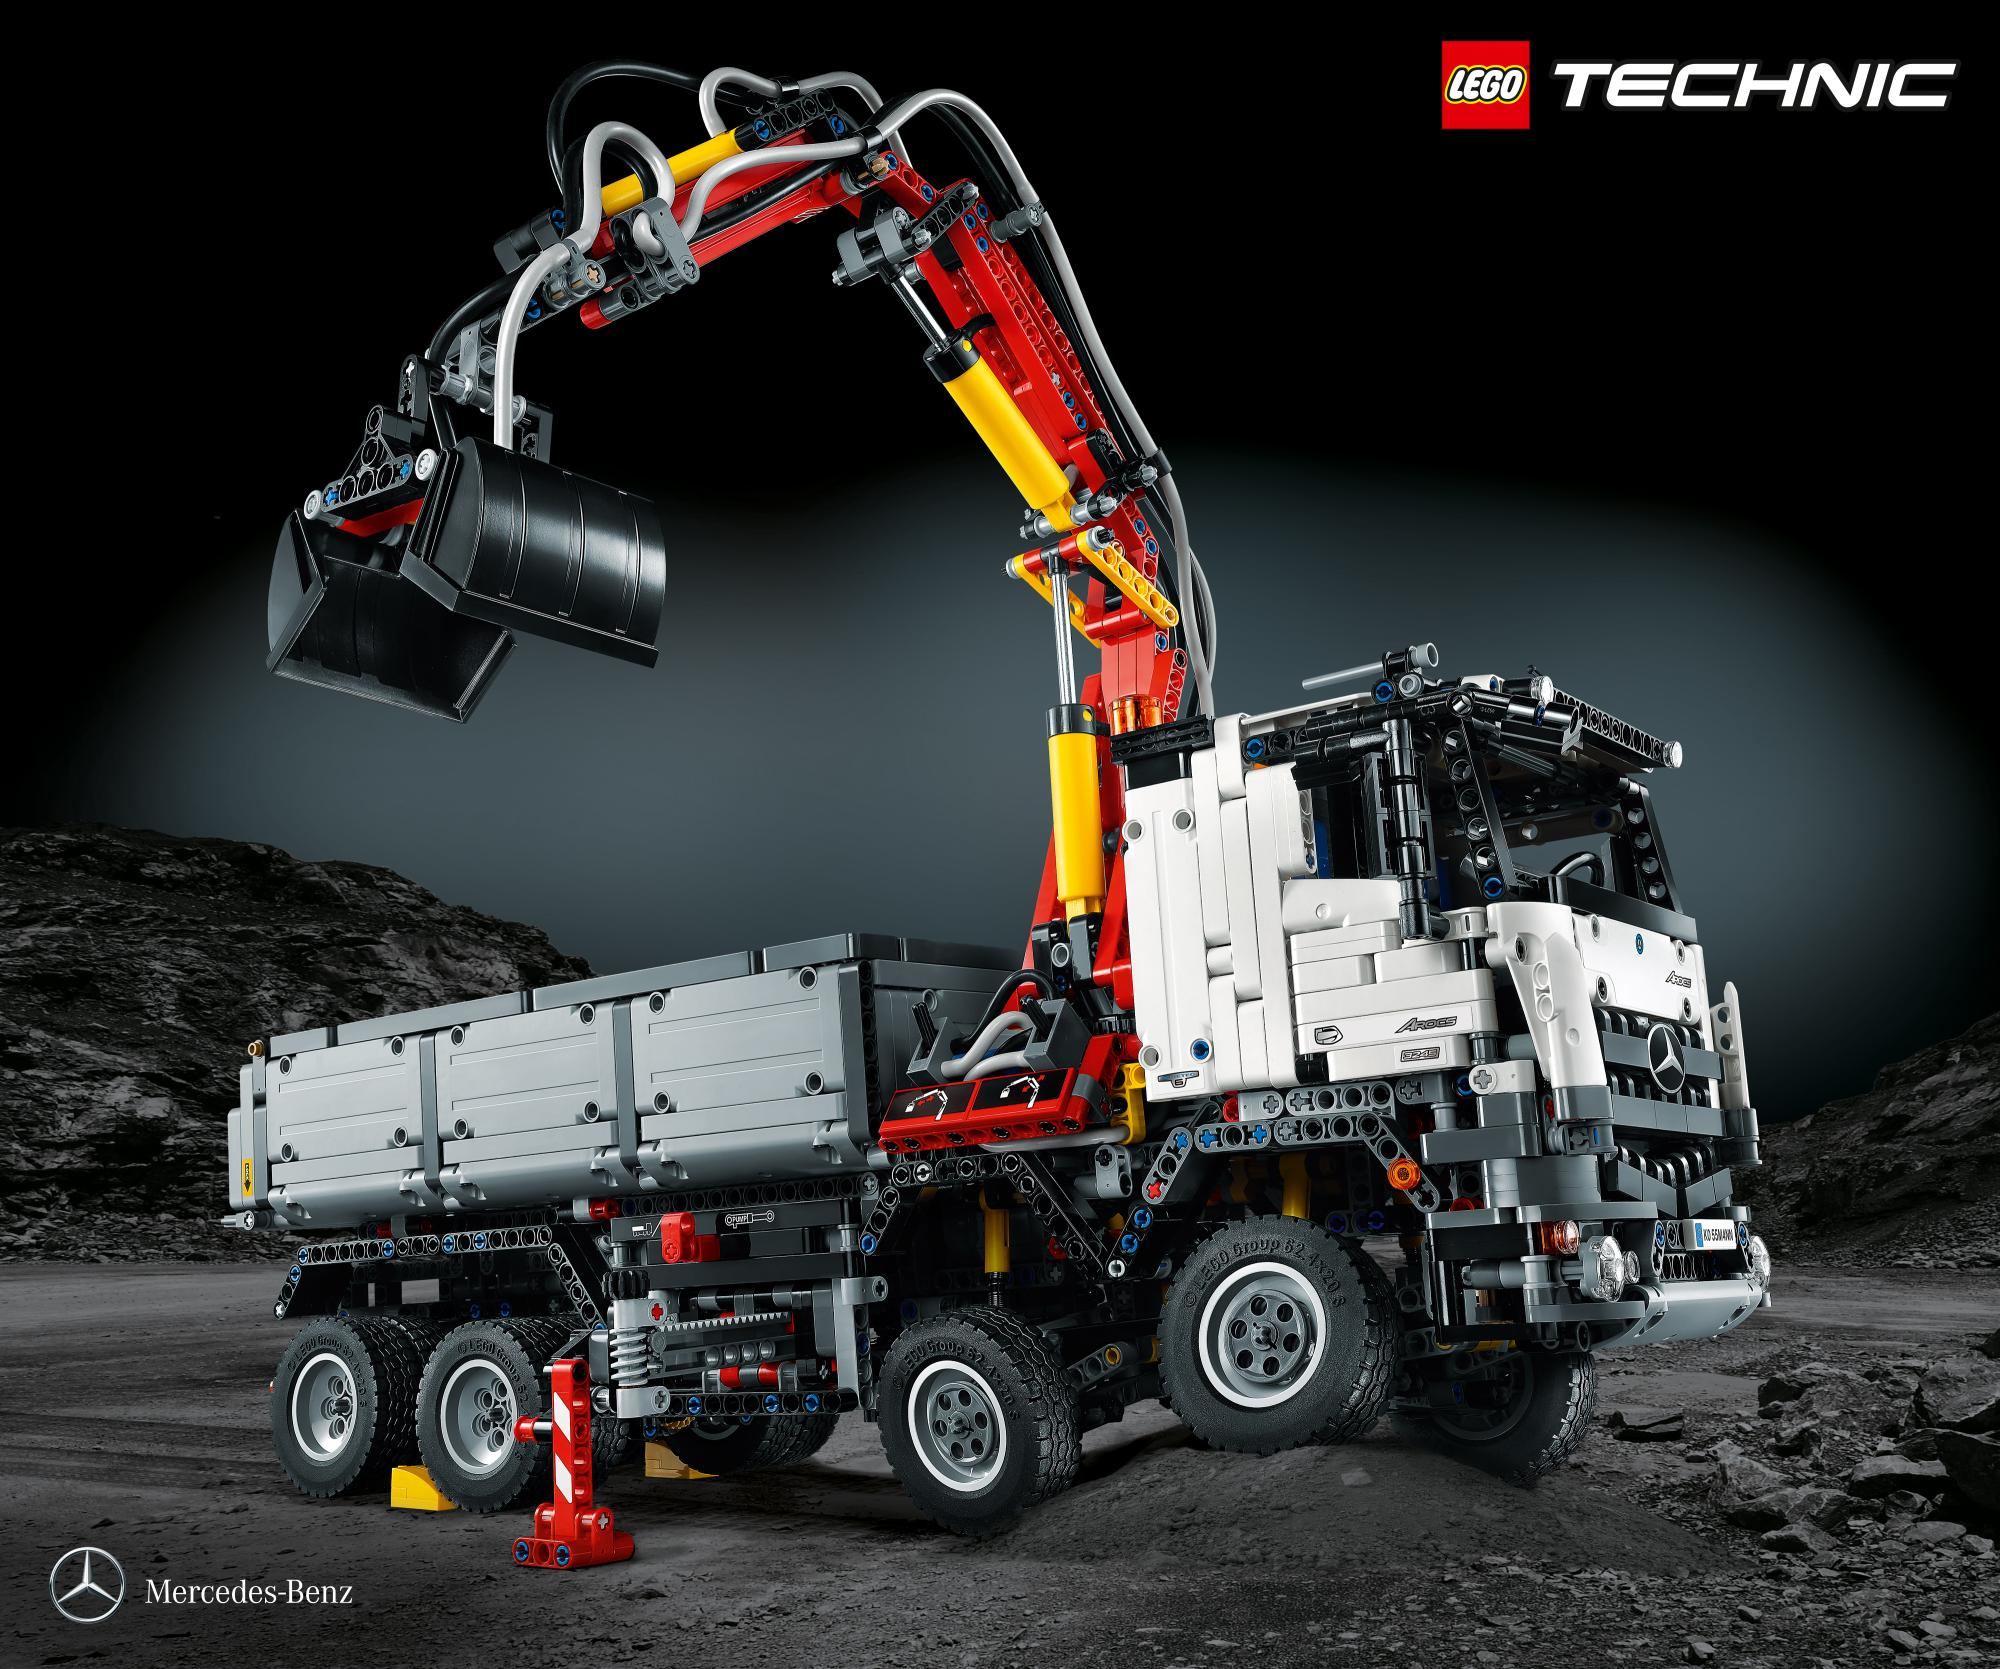 Mercedes Benz Arocs 3245 Launched It S A Lego Technic Truck Made Of